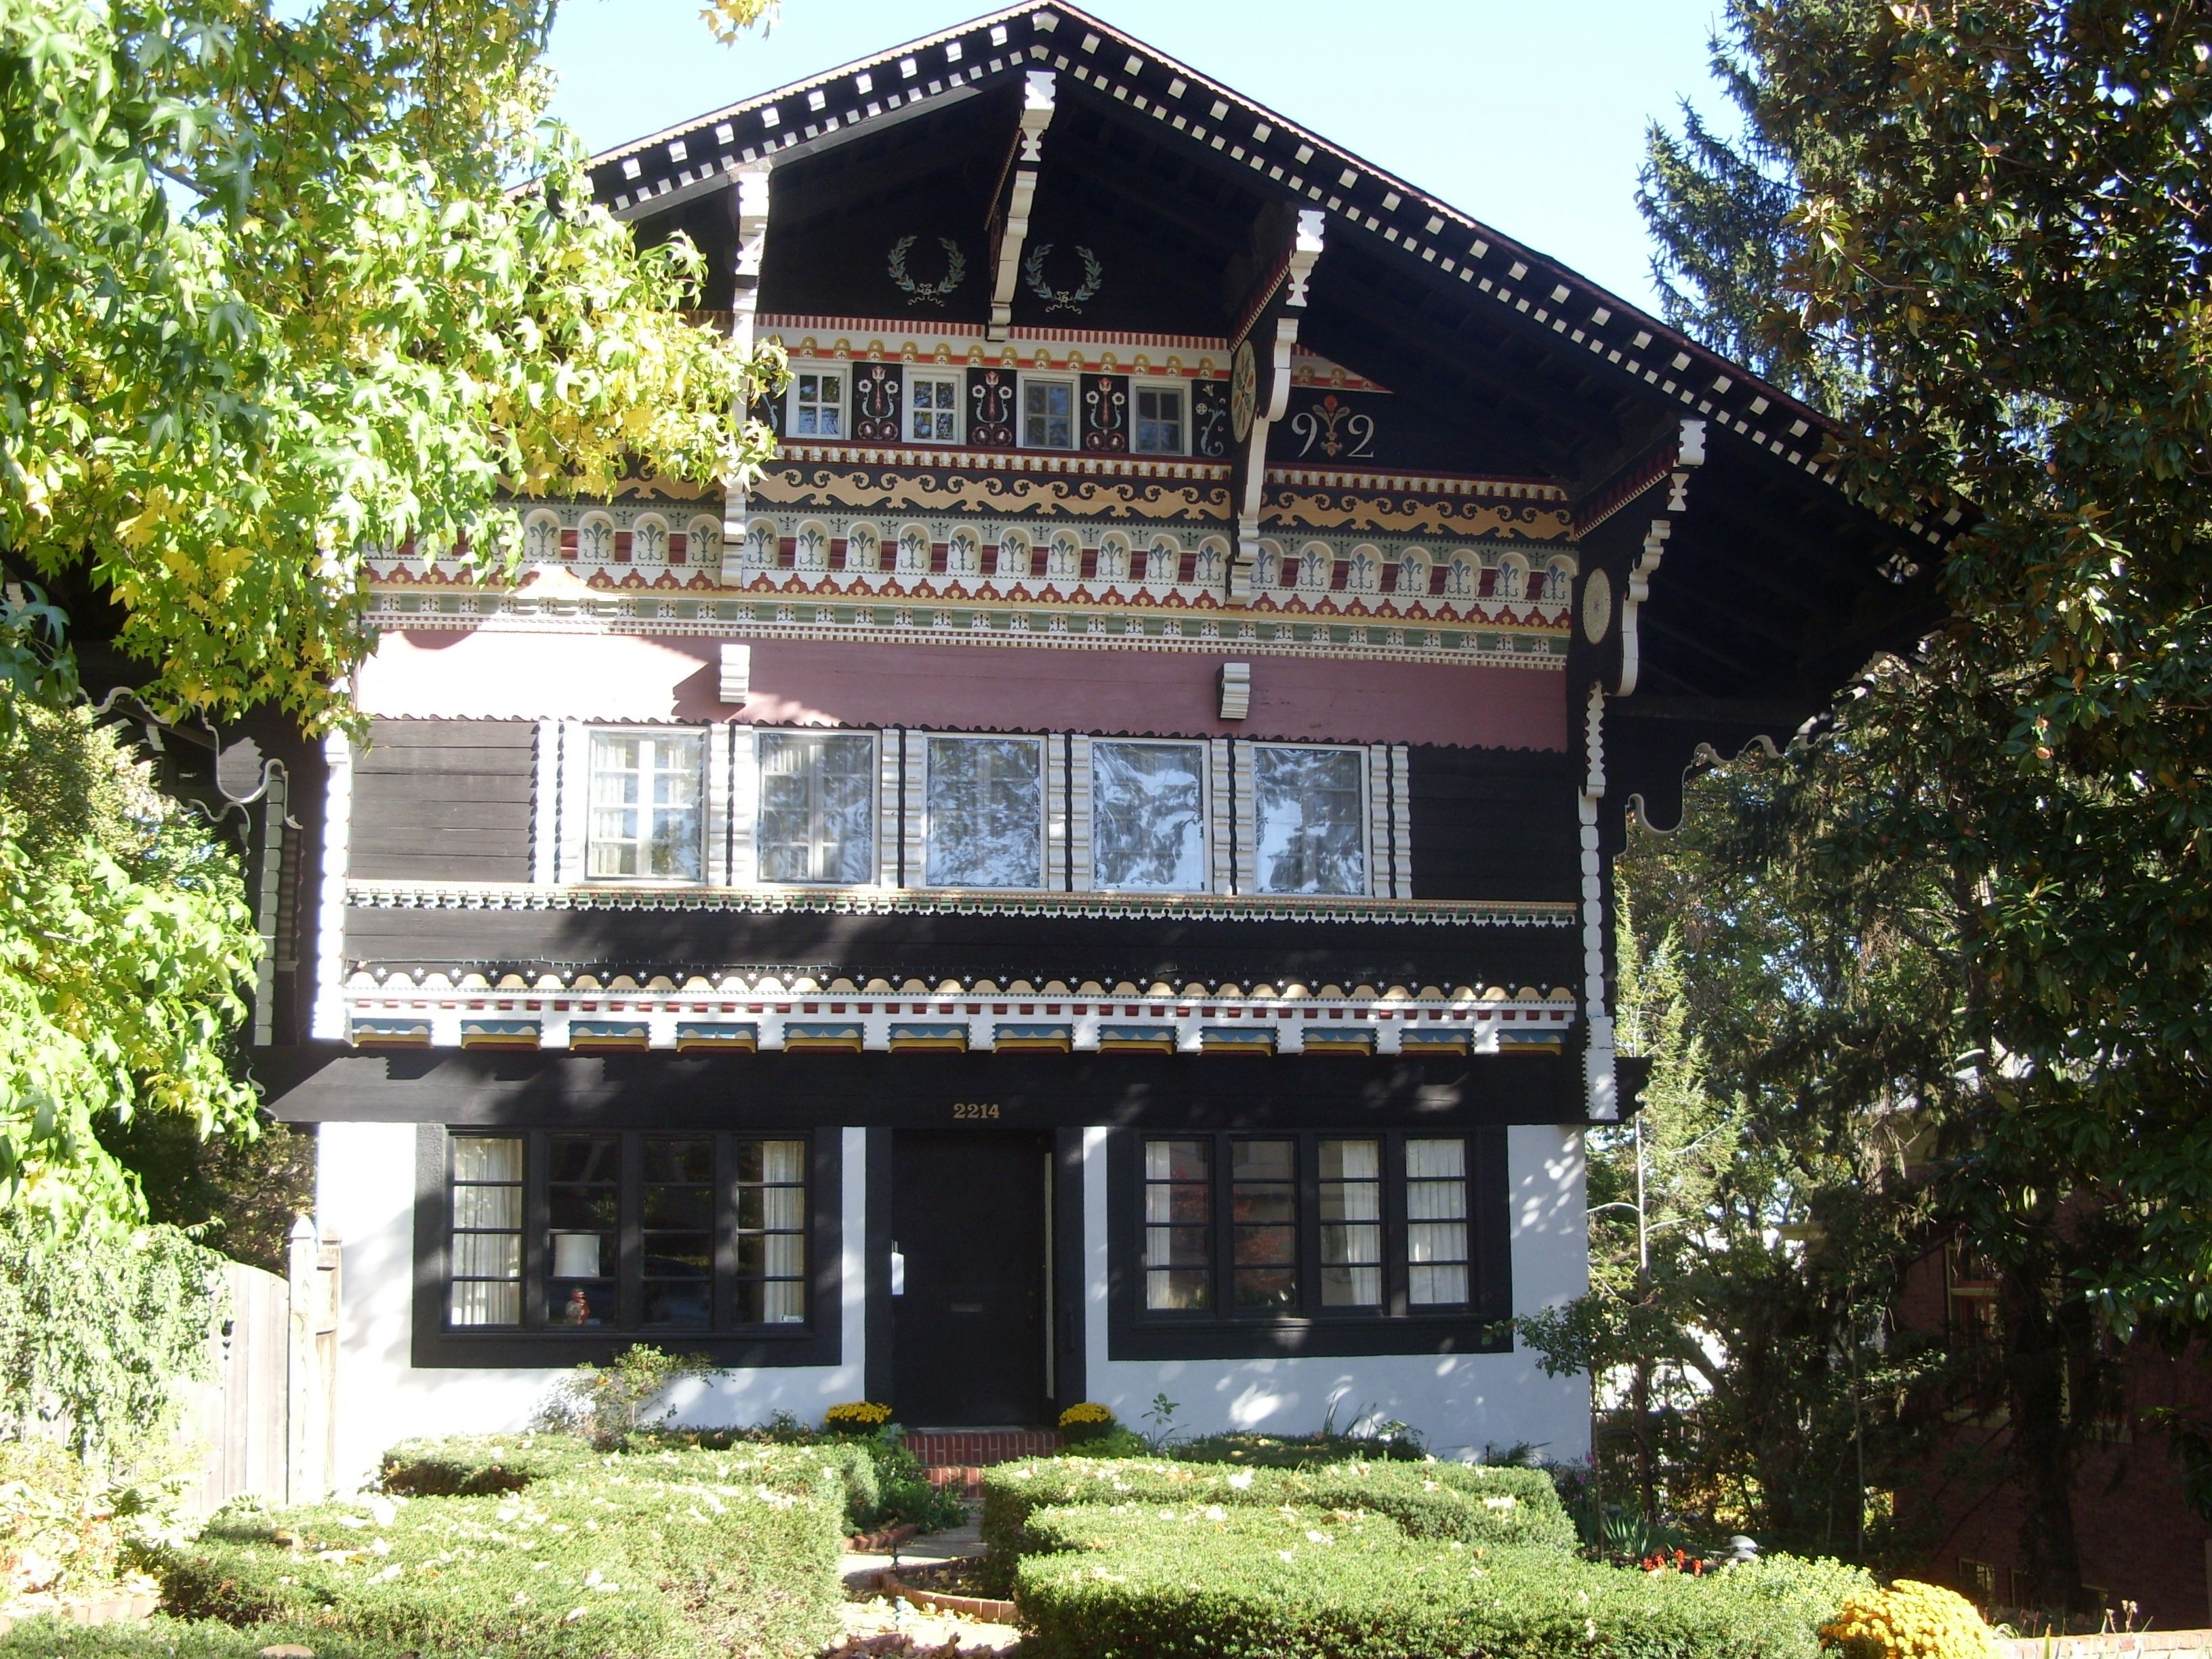 Swiss Chalet Decor Swiss Chalet Style Google Search Chalet Style Pinterest